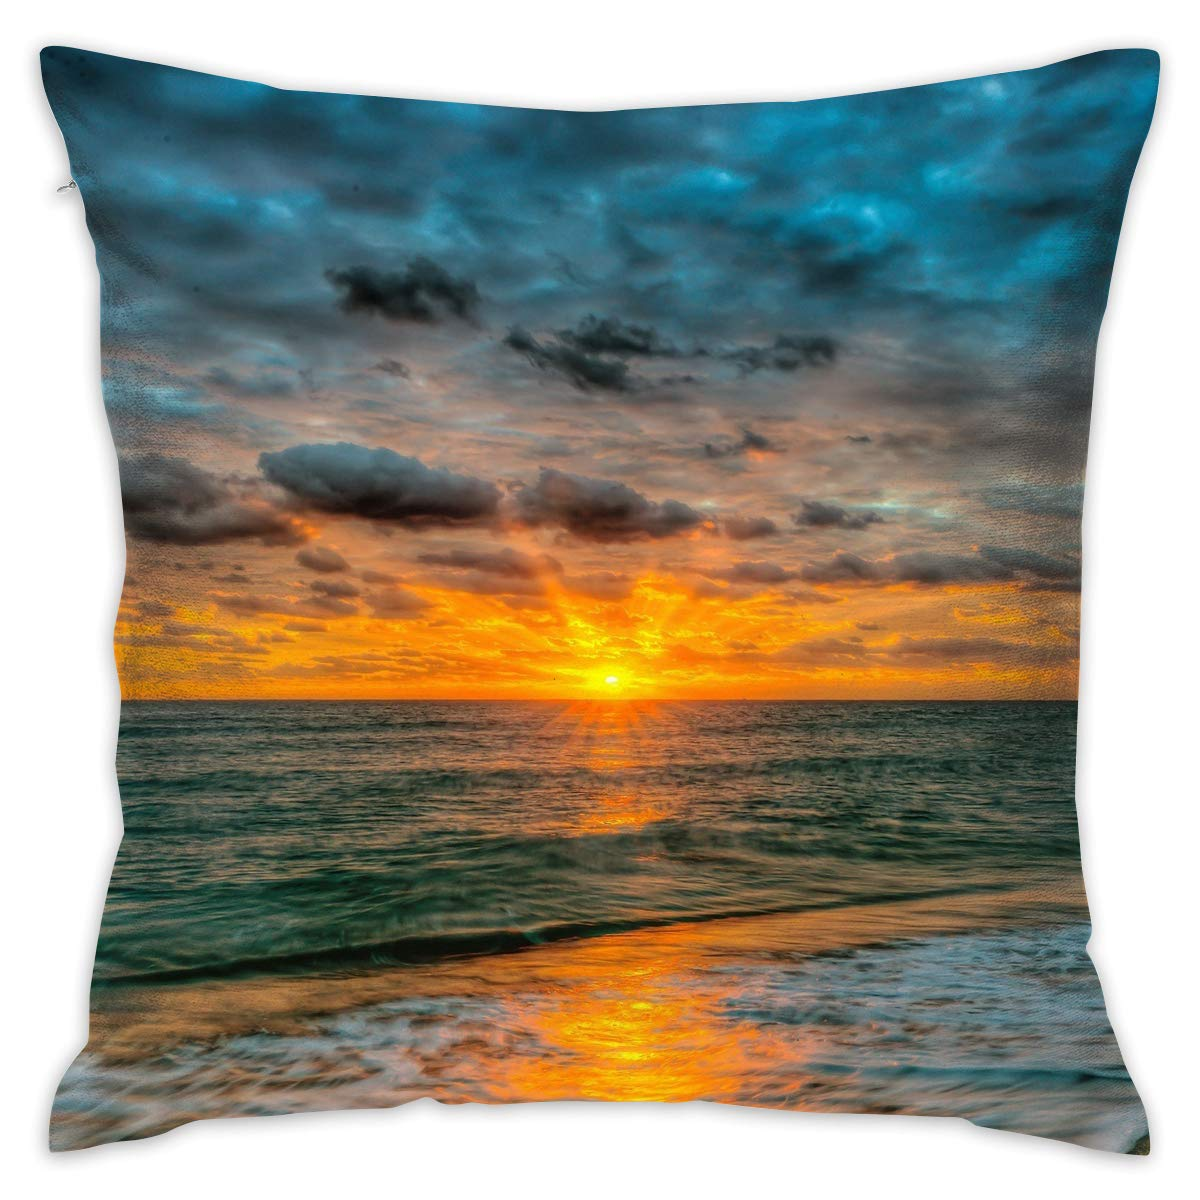 Linxher Beach Sunset Ocean Waves Decorative Pillow for Home Office Living Room Sofa Home Decor 16 X 16 Inch